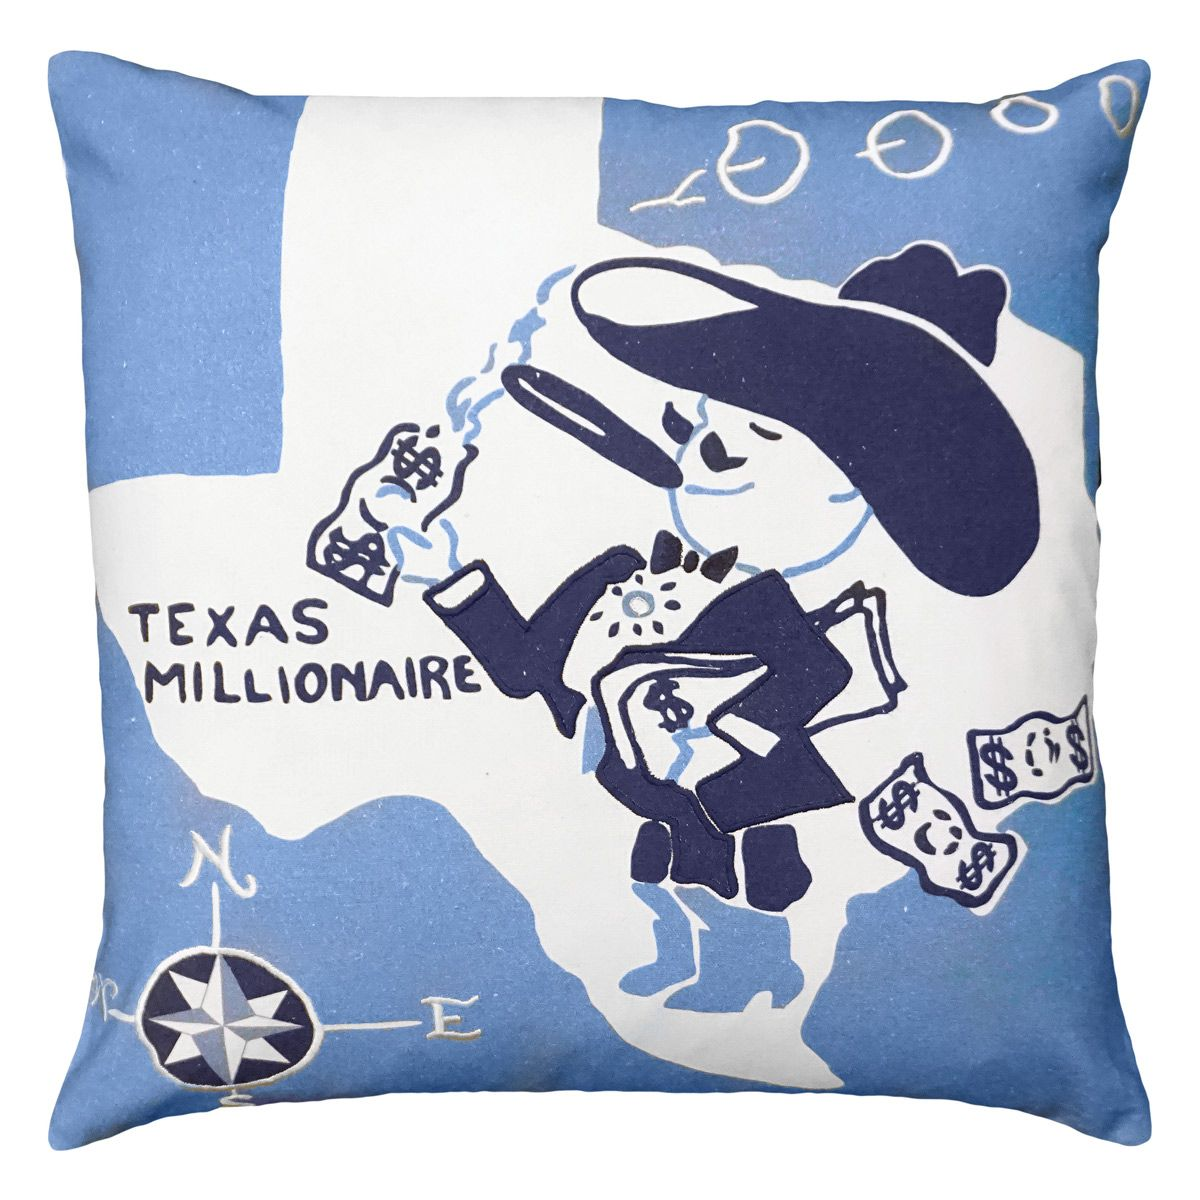 Texas Millionaire Embroidered Pillow